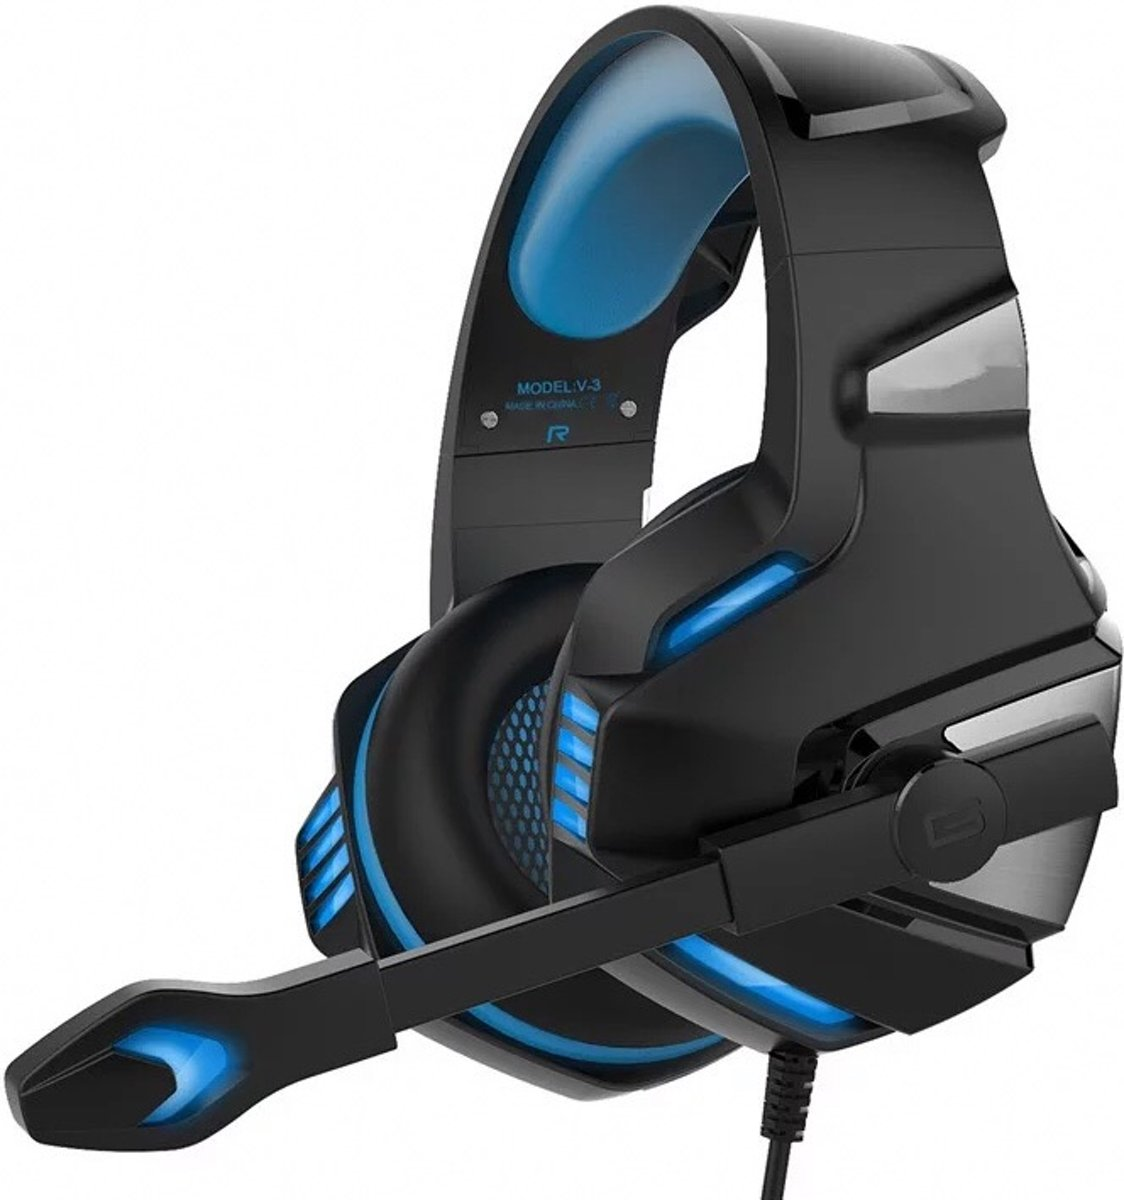 V-3 - 3.5 mm Gaming headset voor- Ps4- Xbox- Pc- Surround Sound- Over ear gaming koptelefoon- Led Verlichting -in Blauw-Zwart